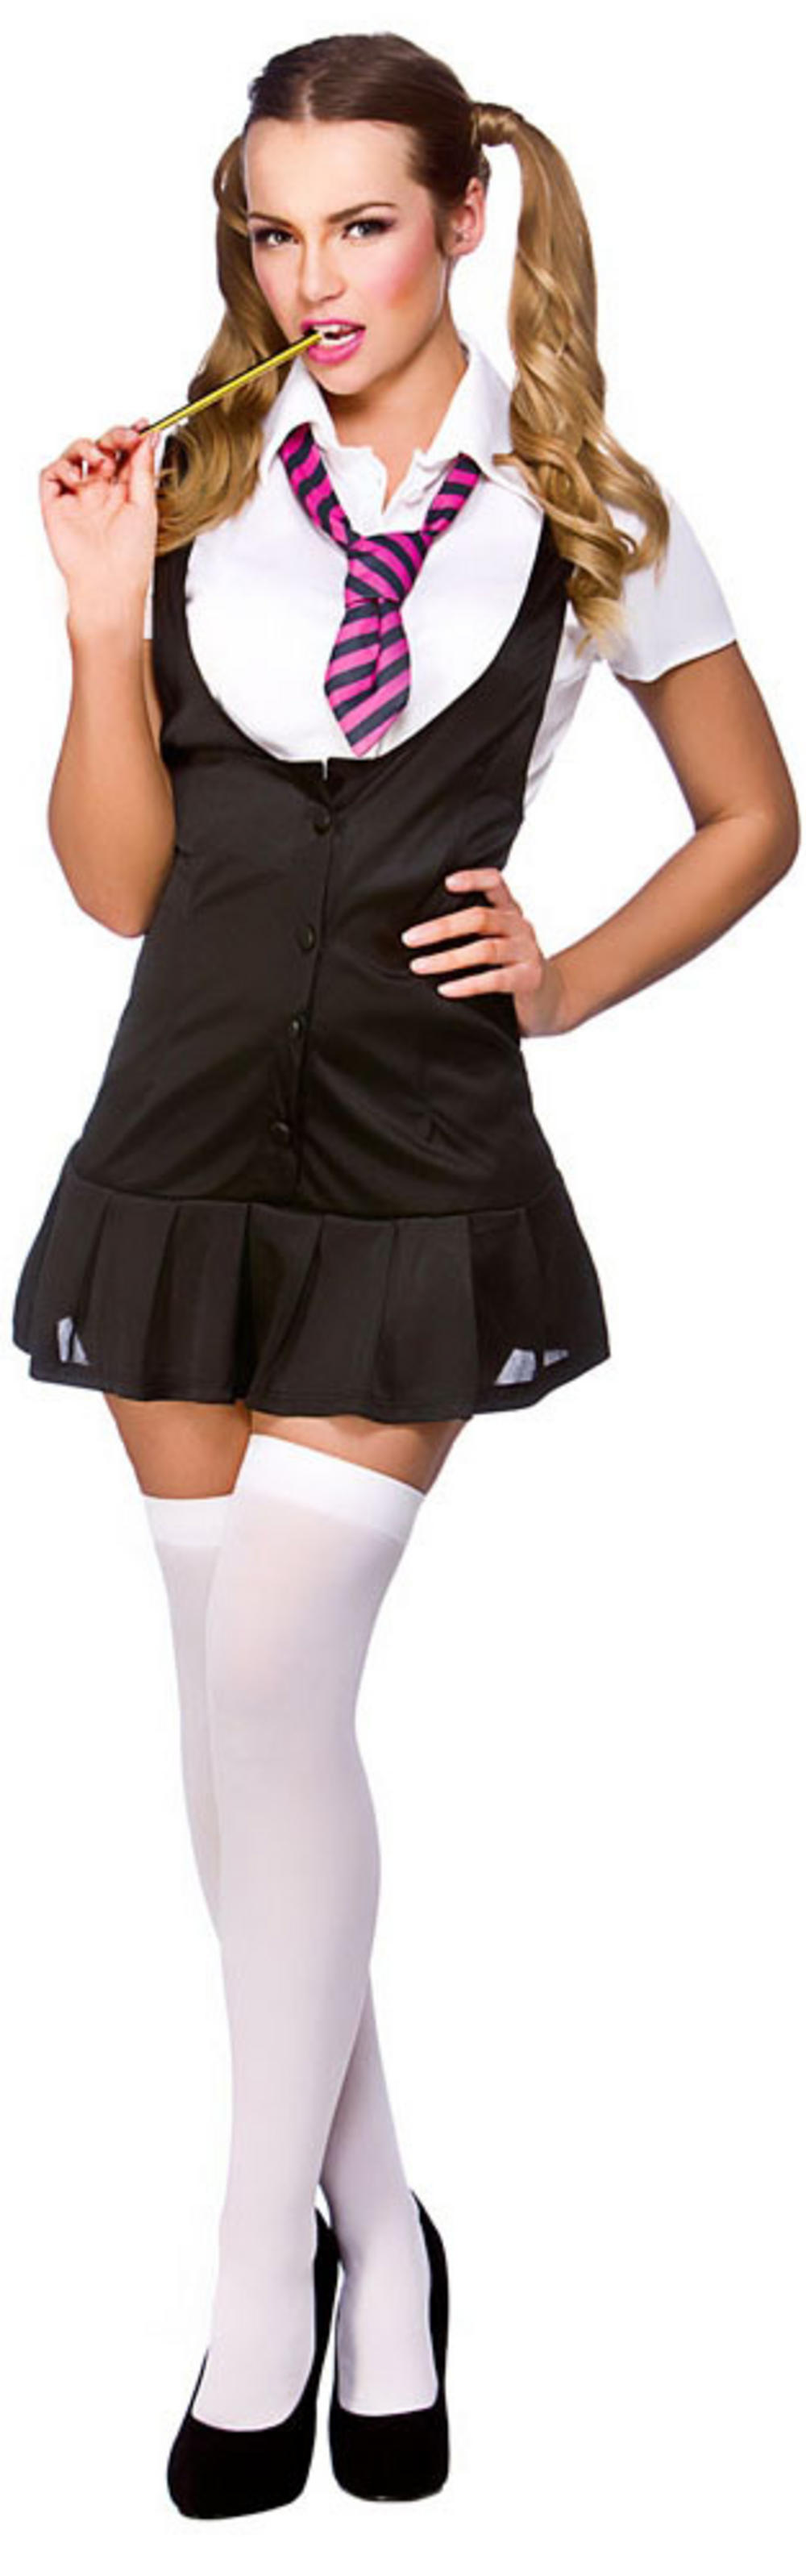 Naughty Schoolgirl Costume